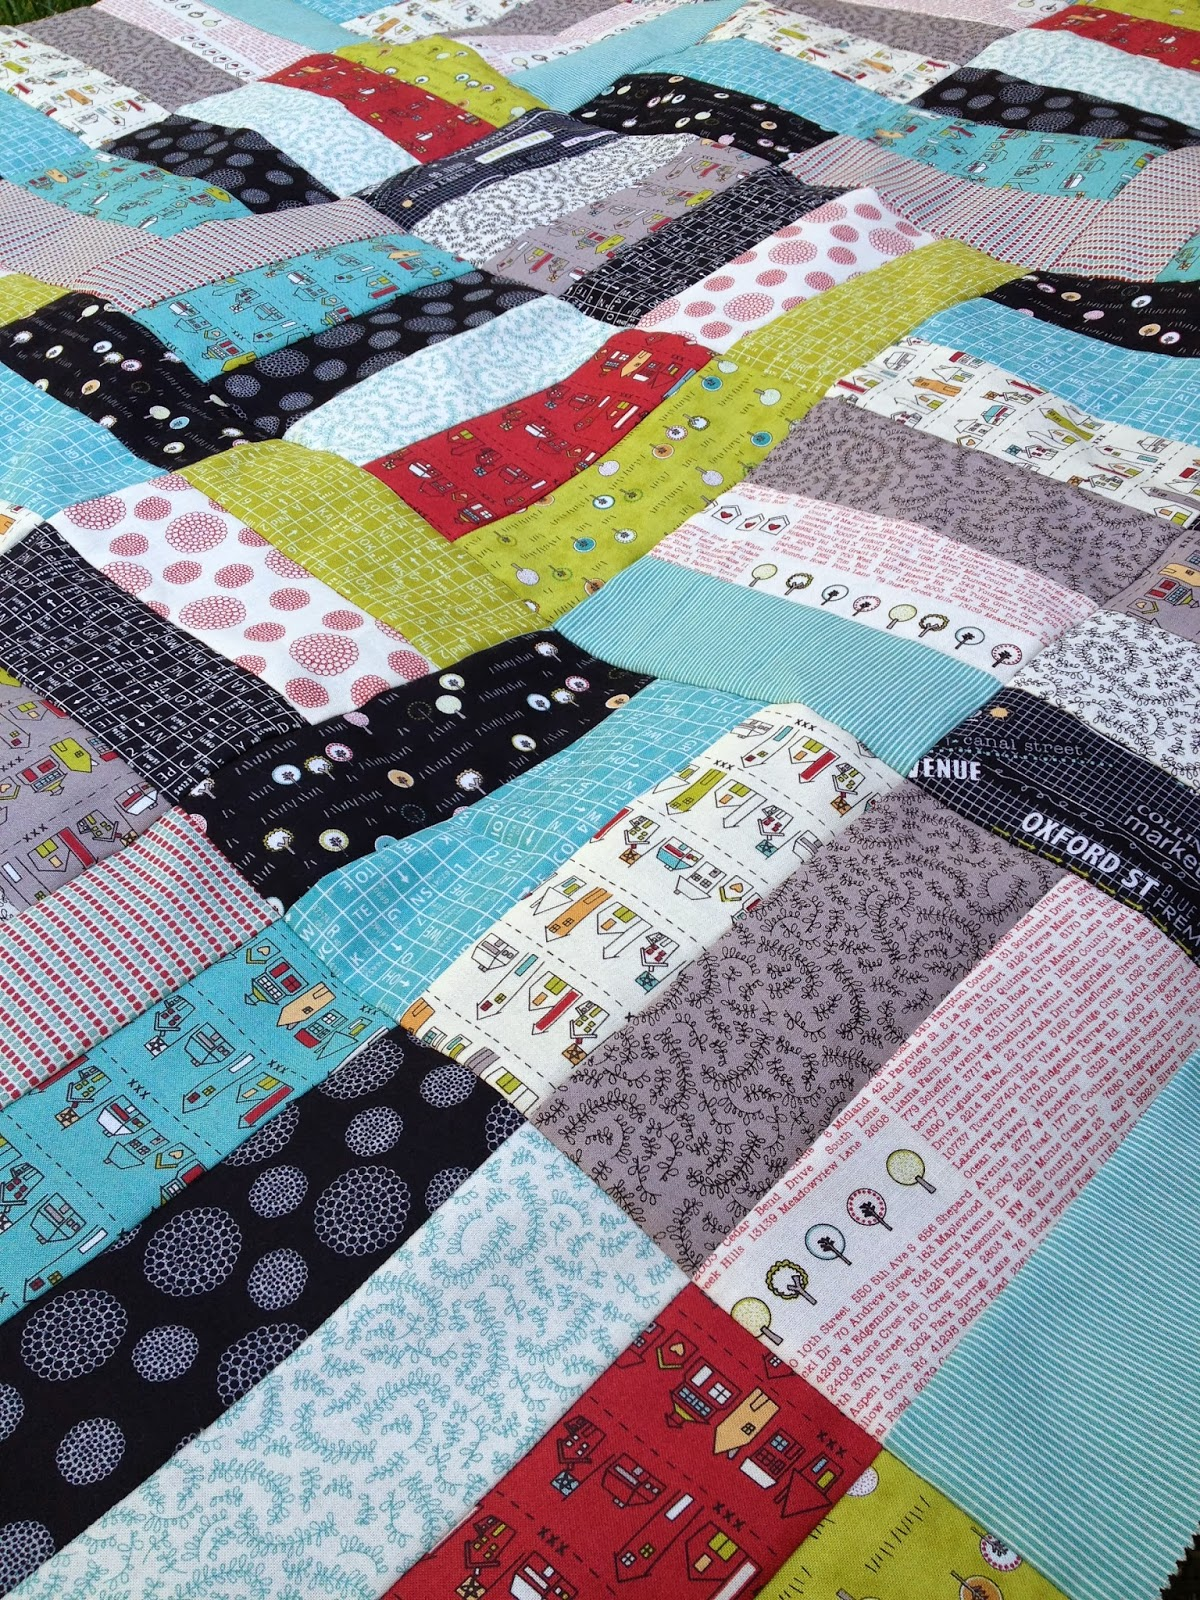 Heart Zipper Jelly Roll Jam Quilt Pattern Tutorial By Fat